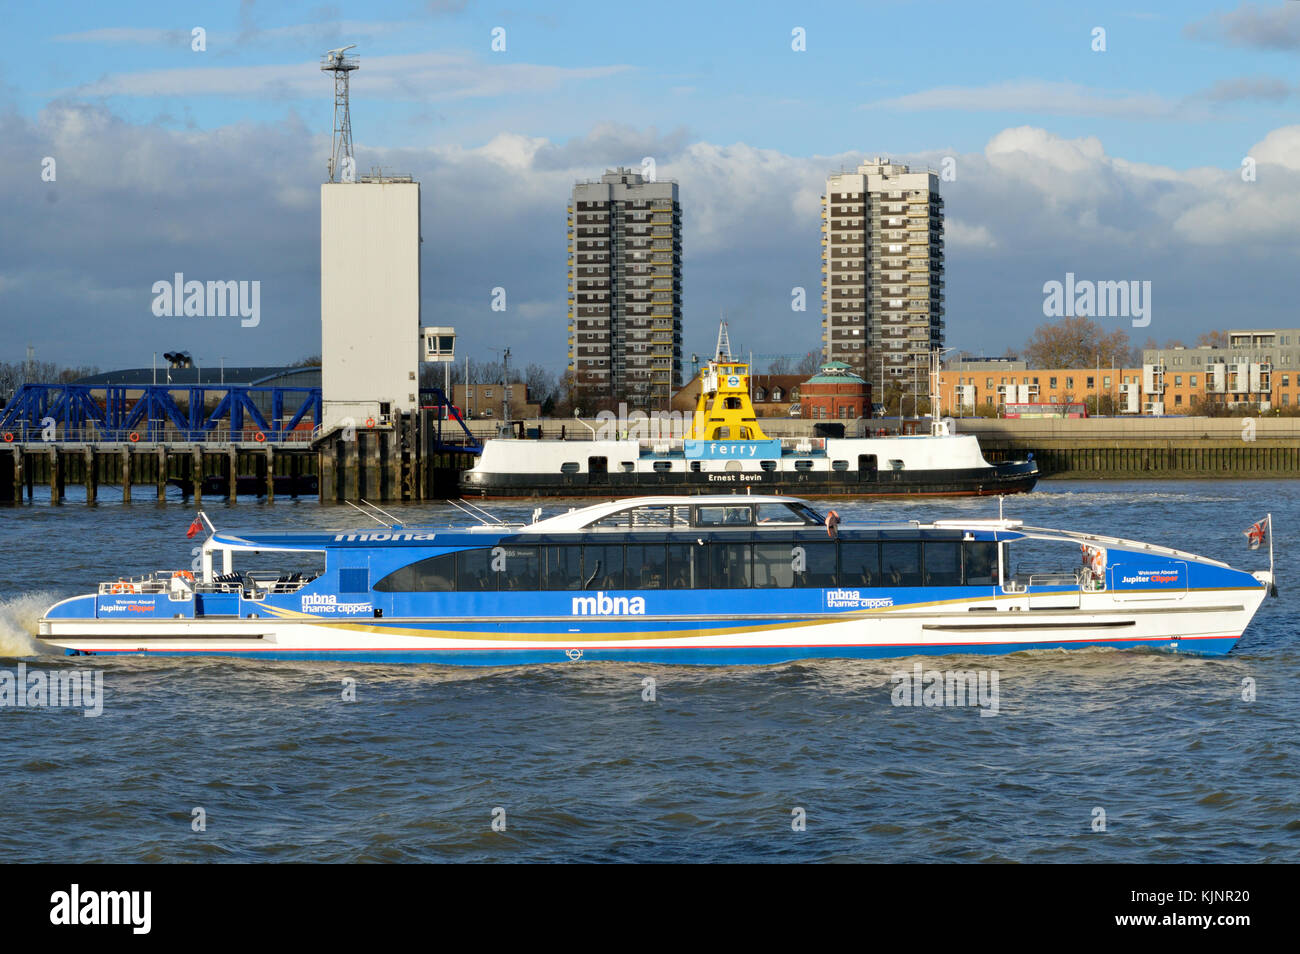 Jupiter Clipper part of the MBNA Thames Clippers fleet operating river bus service on the River Thames in London - Stock Image